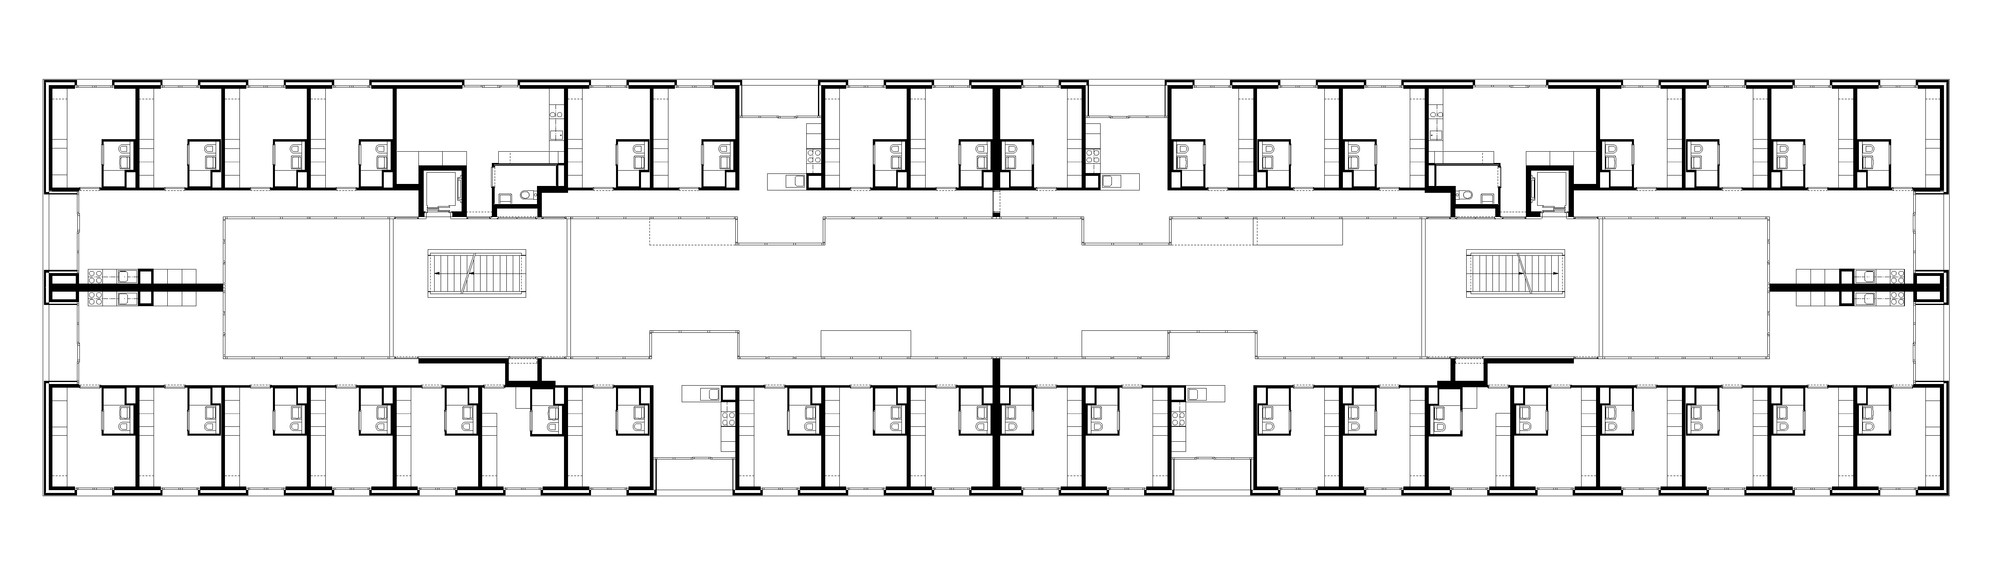 Gallery of Student housing in Geneva Frei Rezakhanlou Architects 12 – Student Housing Floor Plans